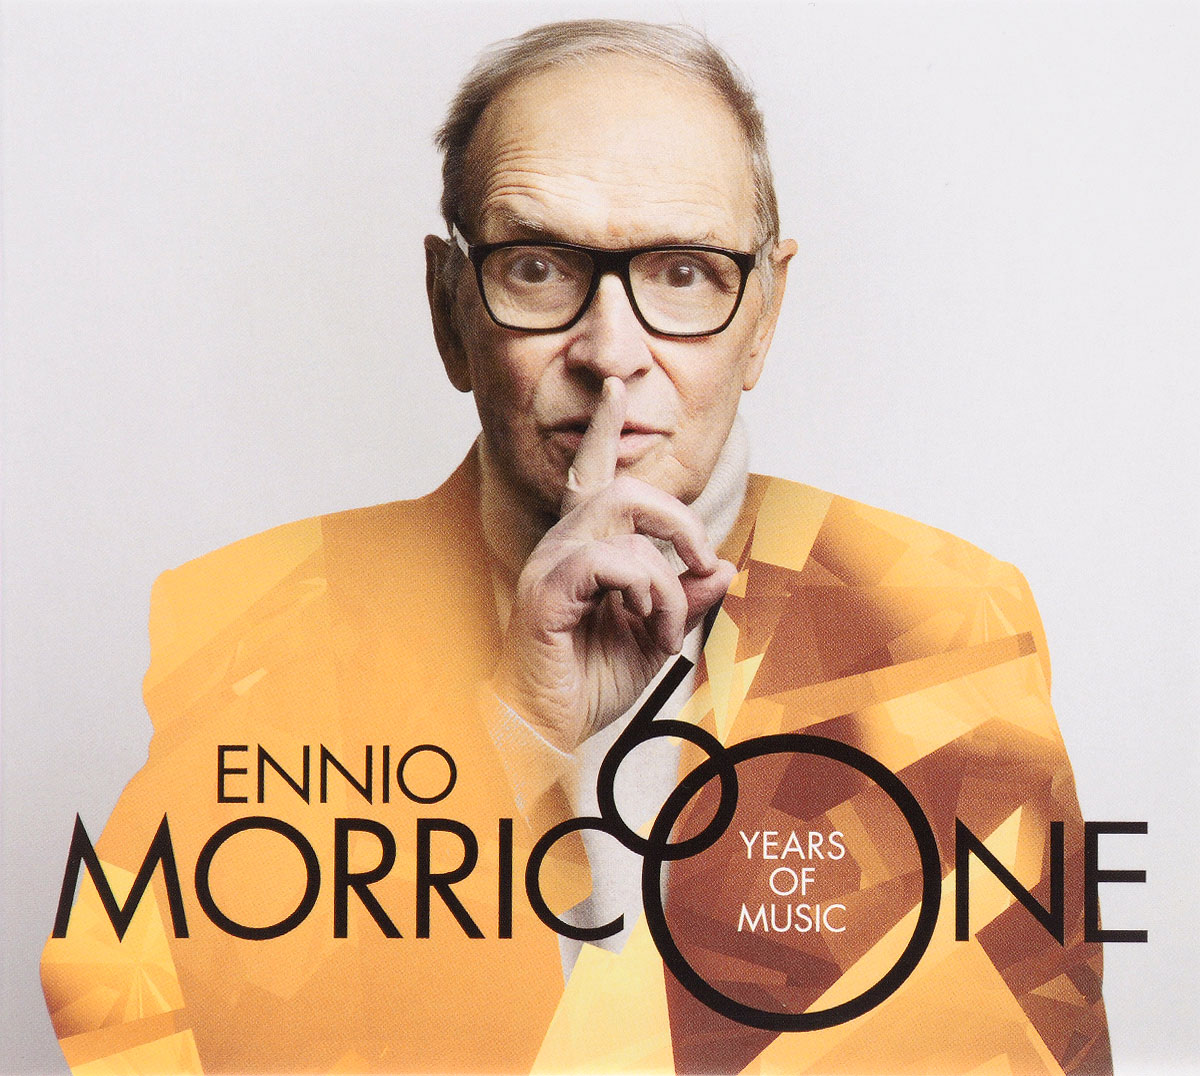 Эннио Морриконе Ennio Morricone. Morricone 60 Years Of Music ennio morricone morricone 60 cd